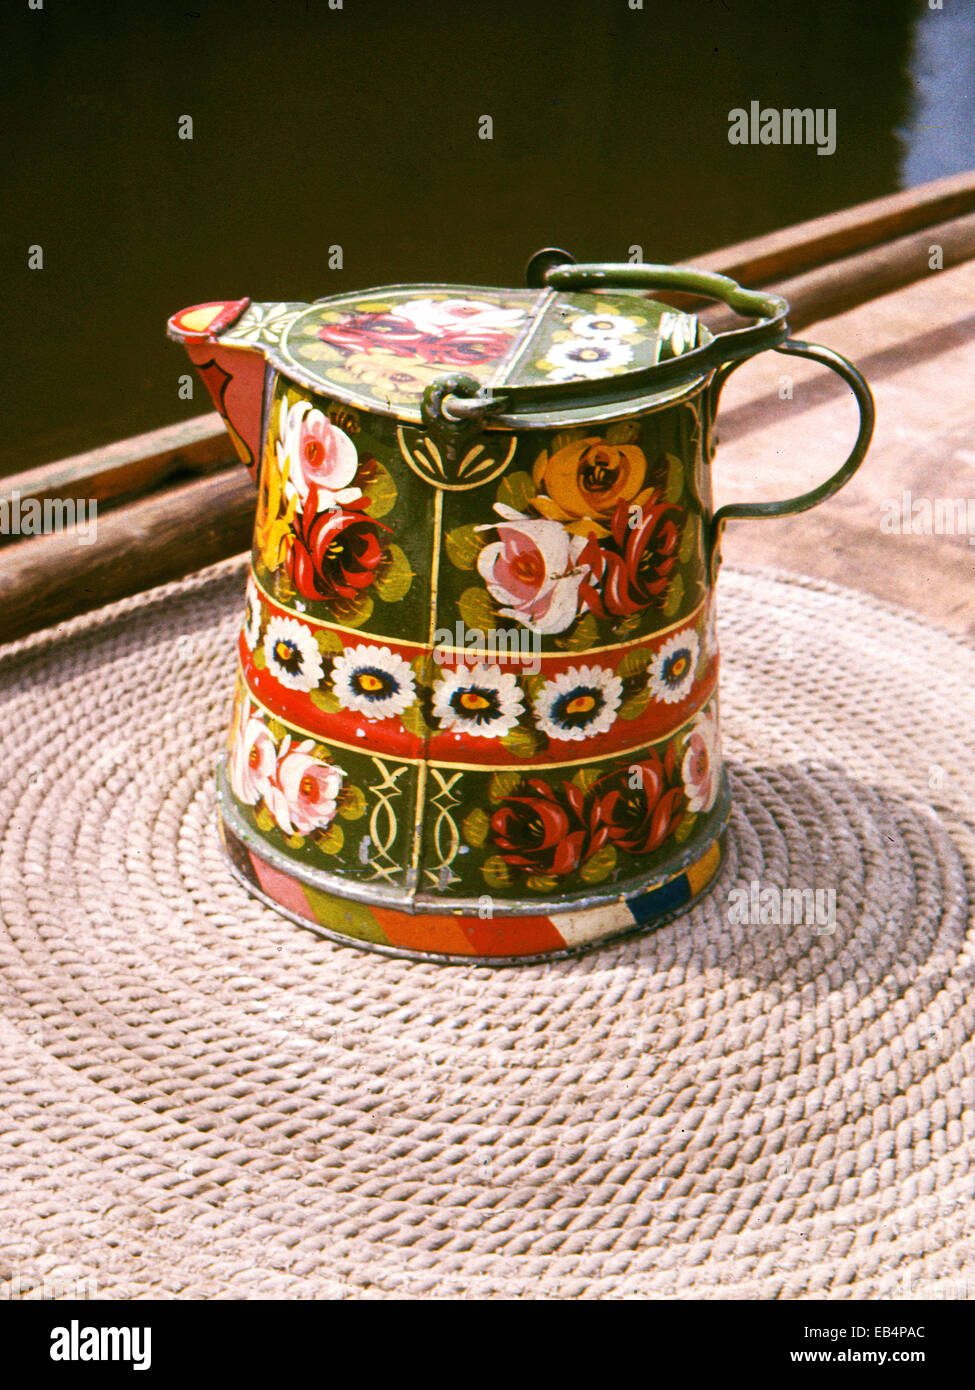 canalware jug pictured on narrowboat Stock Photo